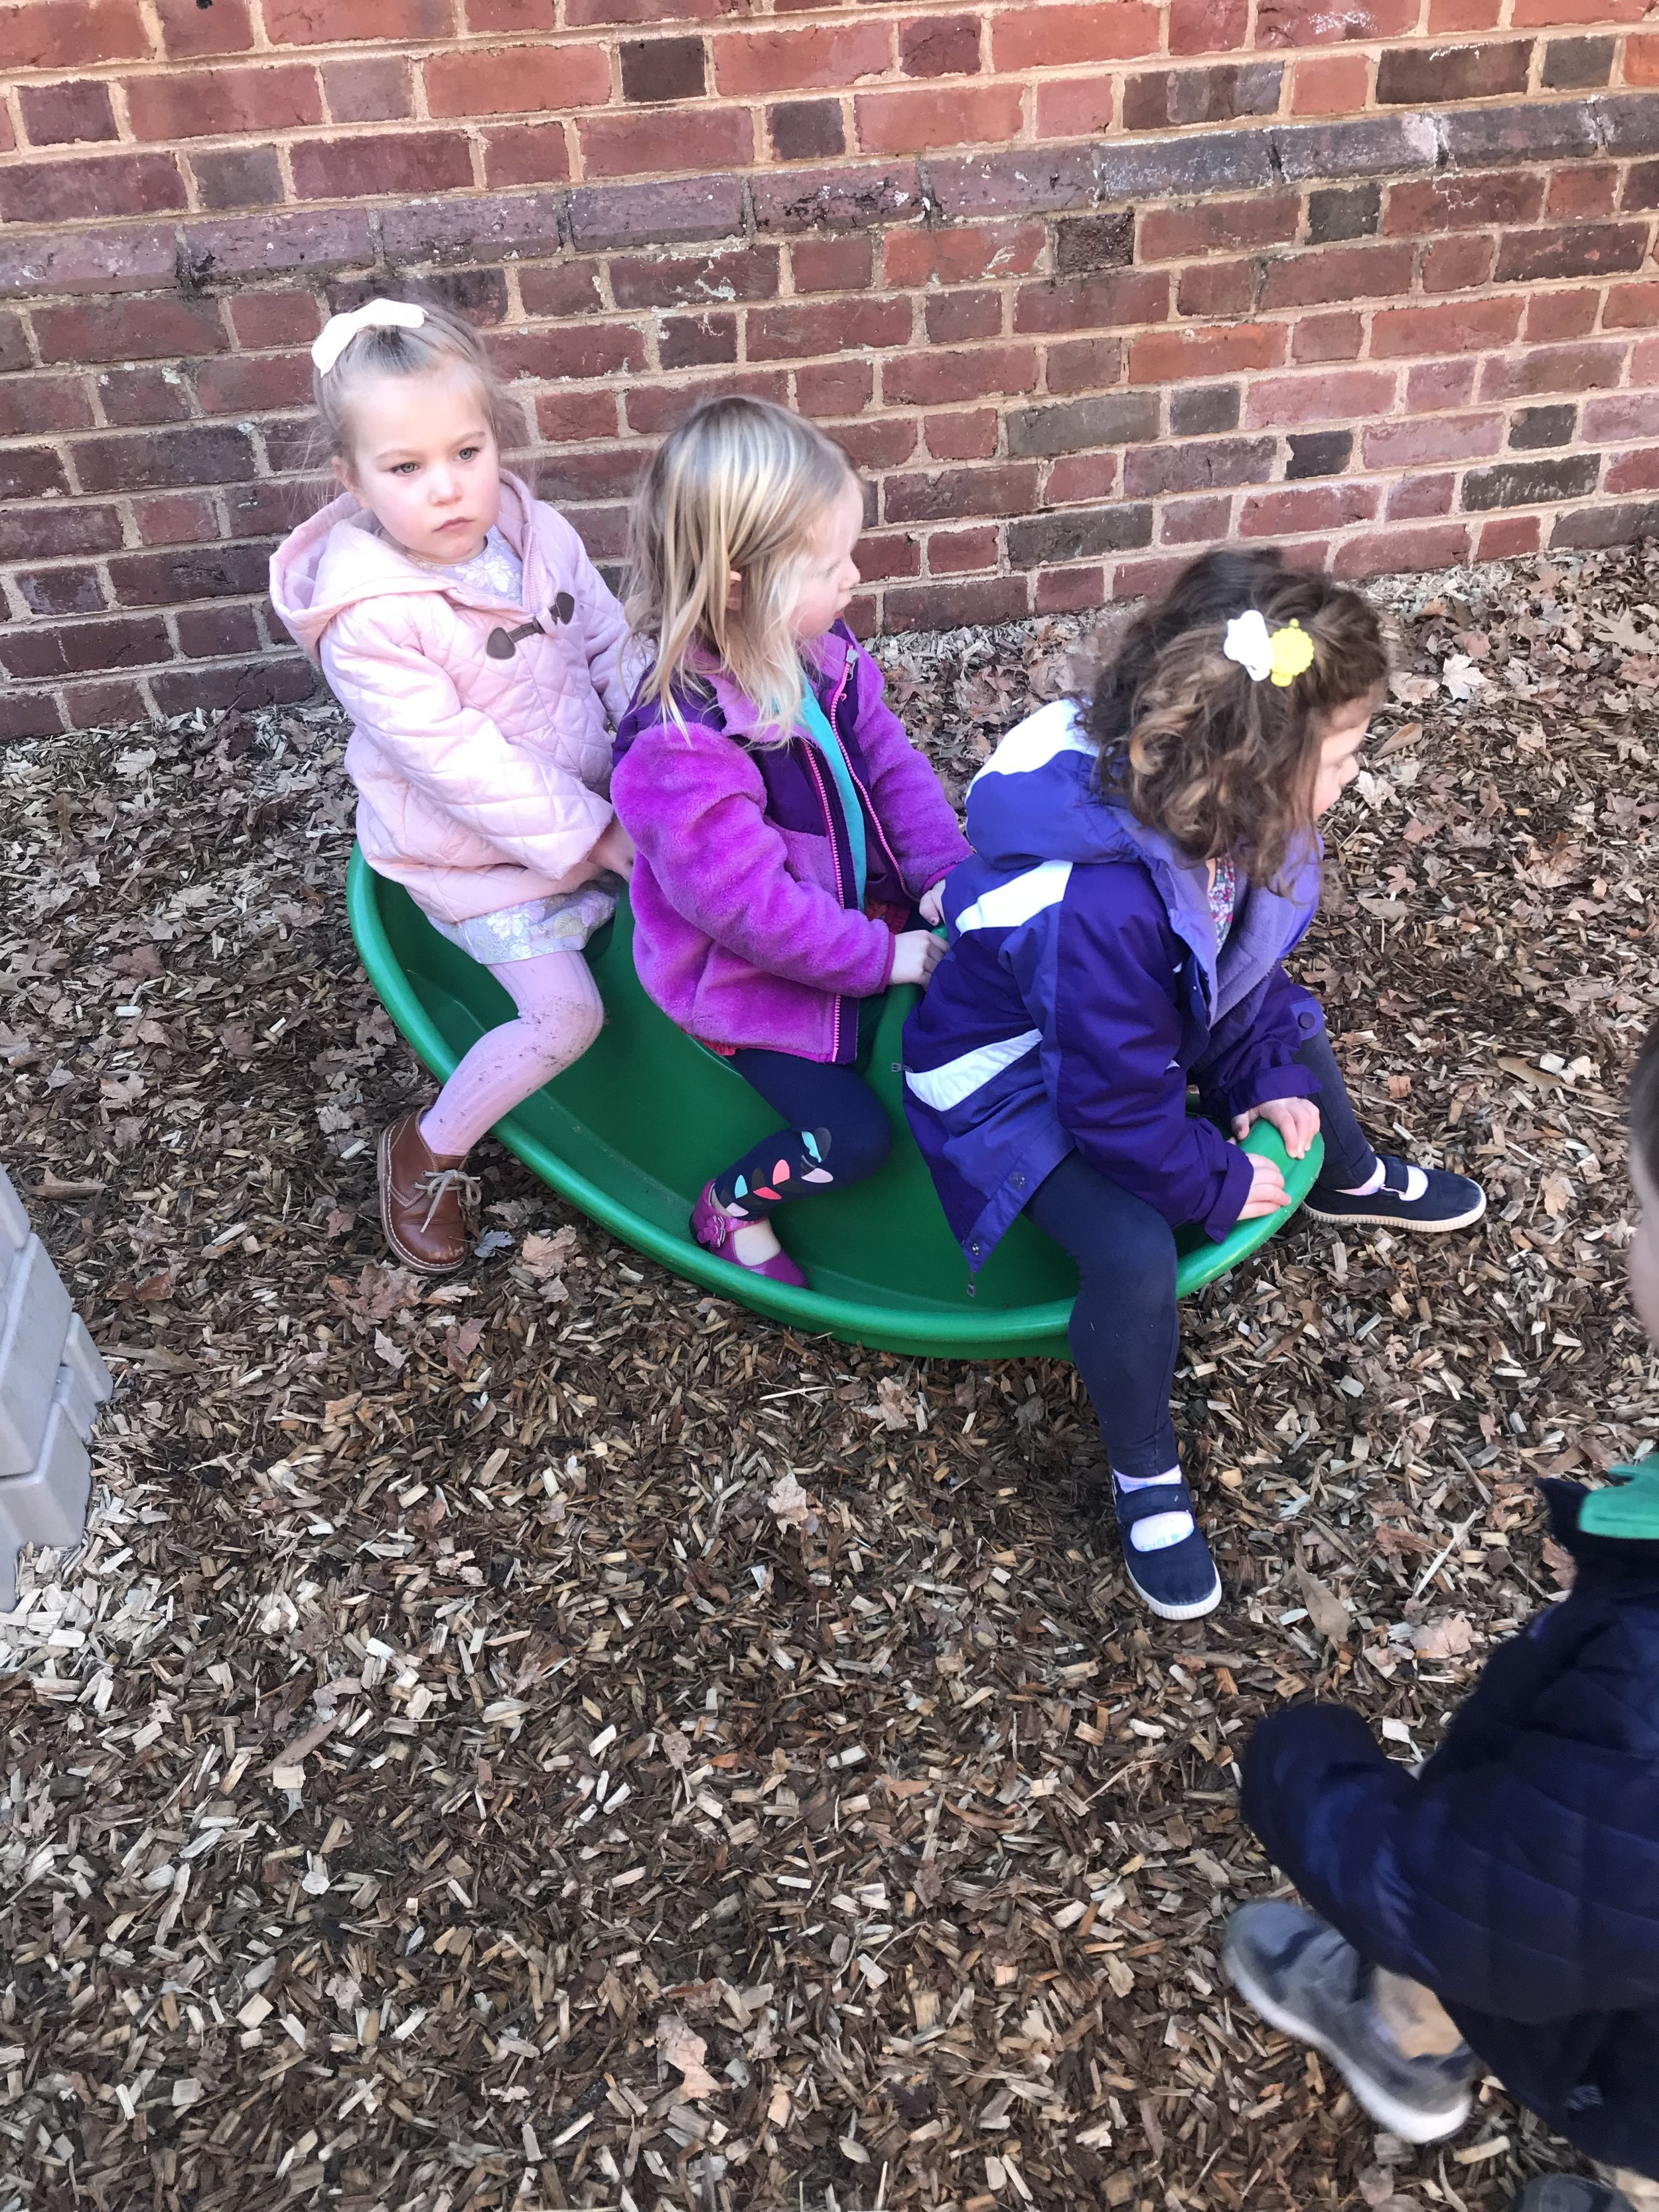 Working together on the see-saw.